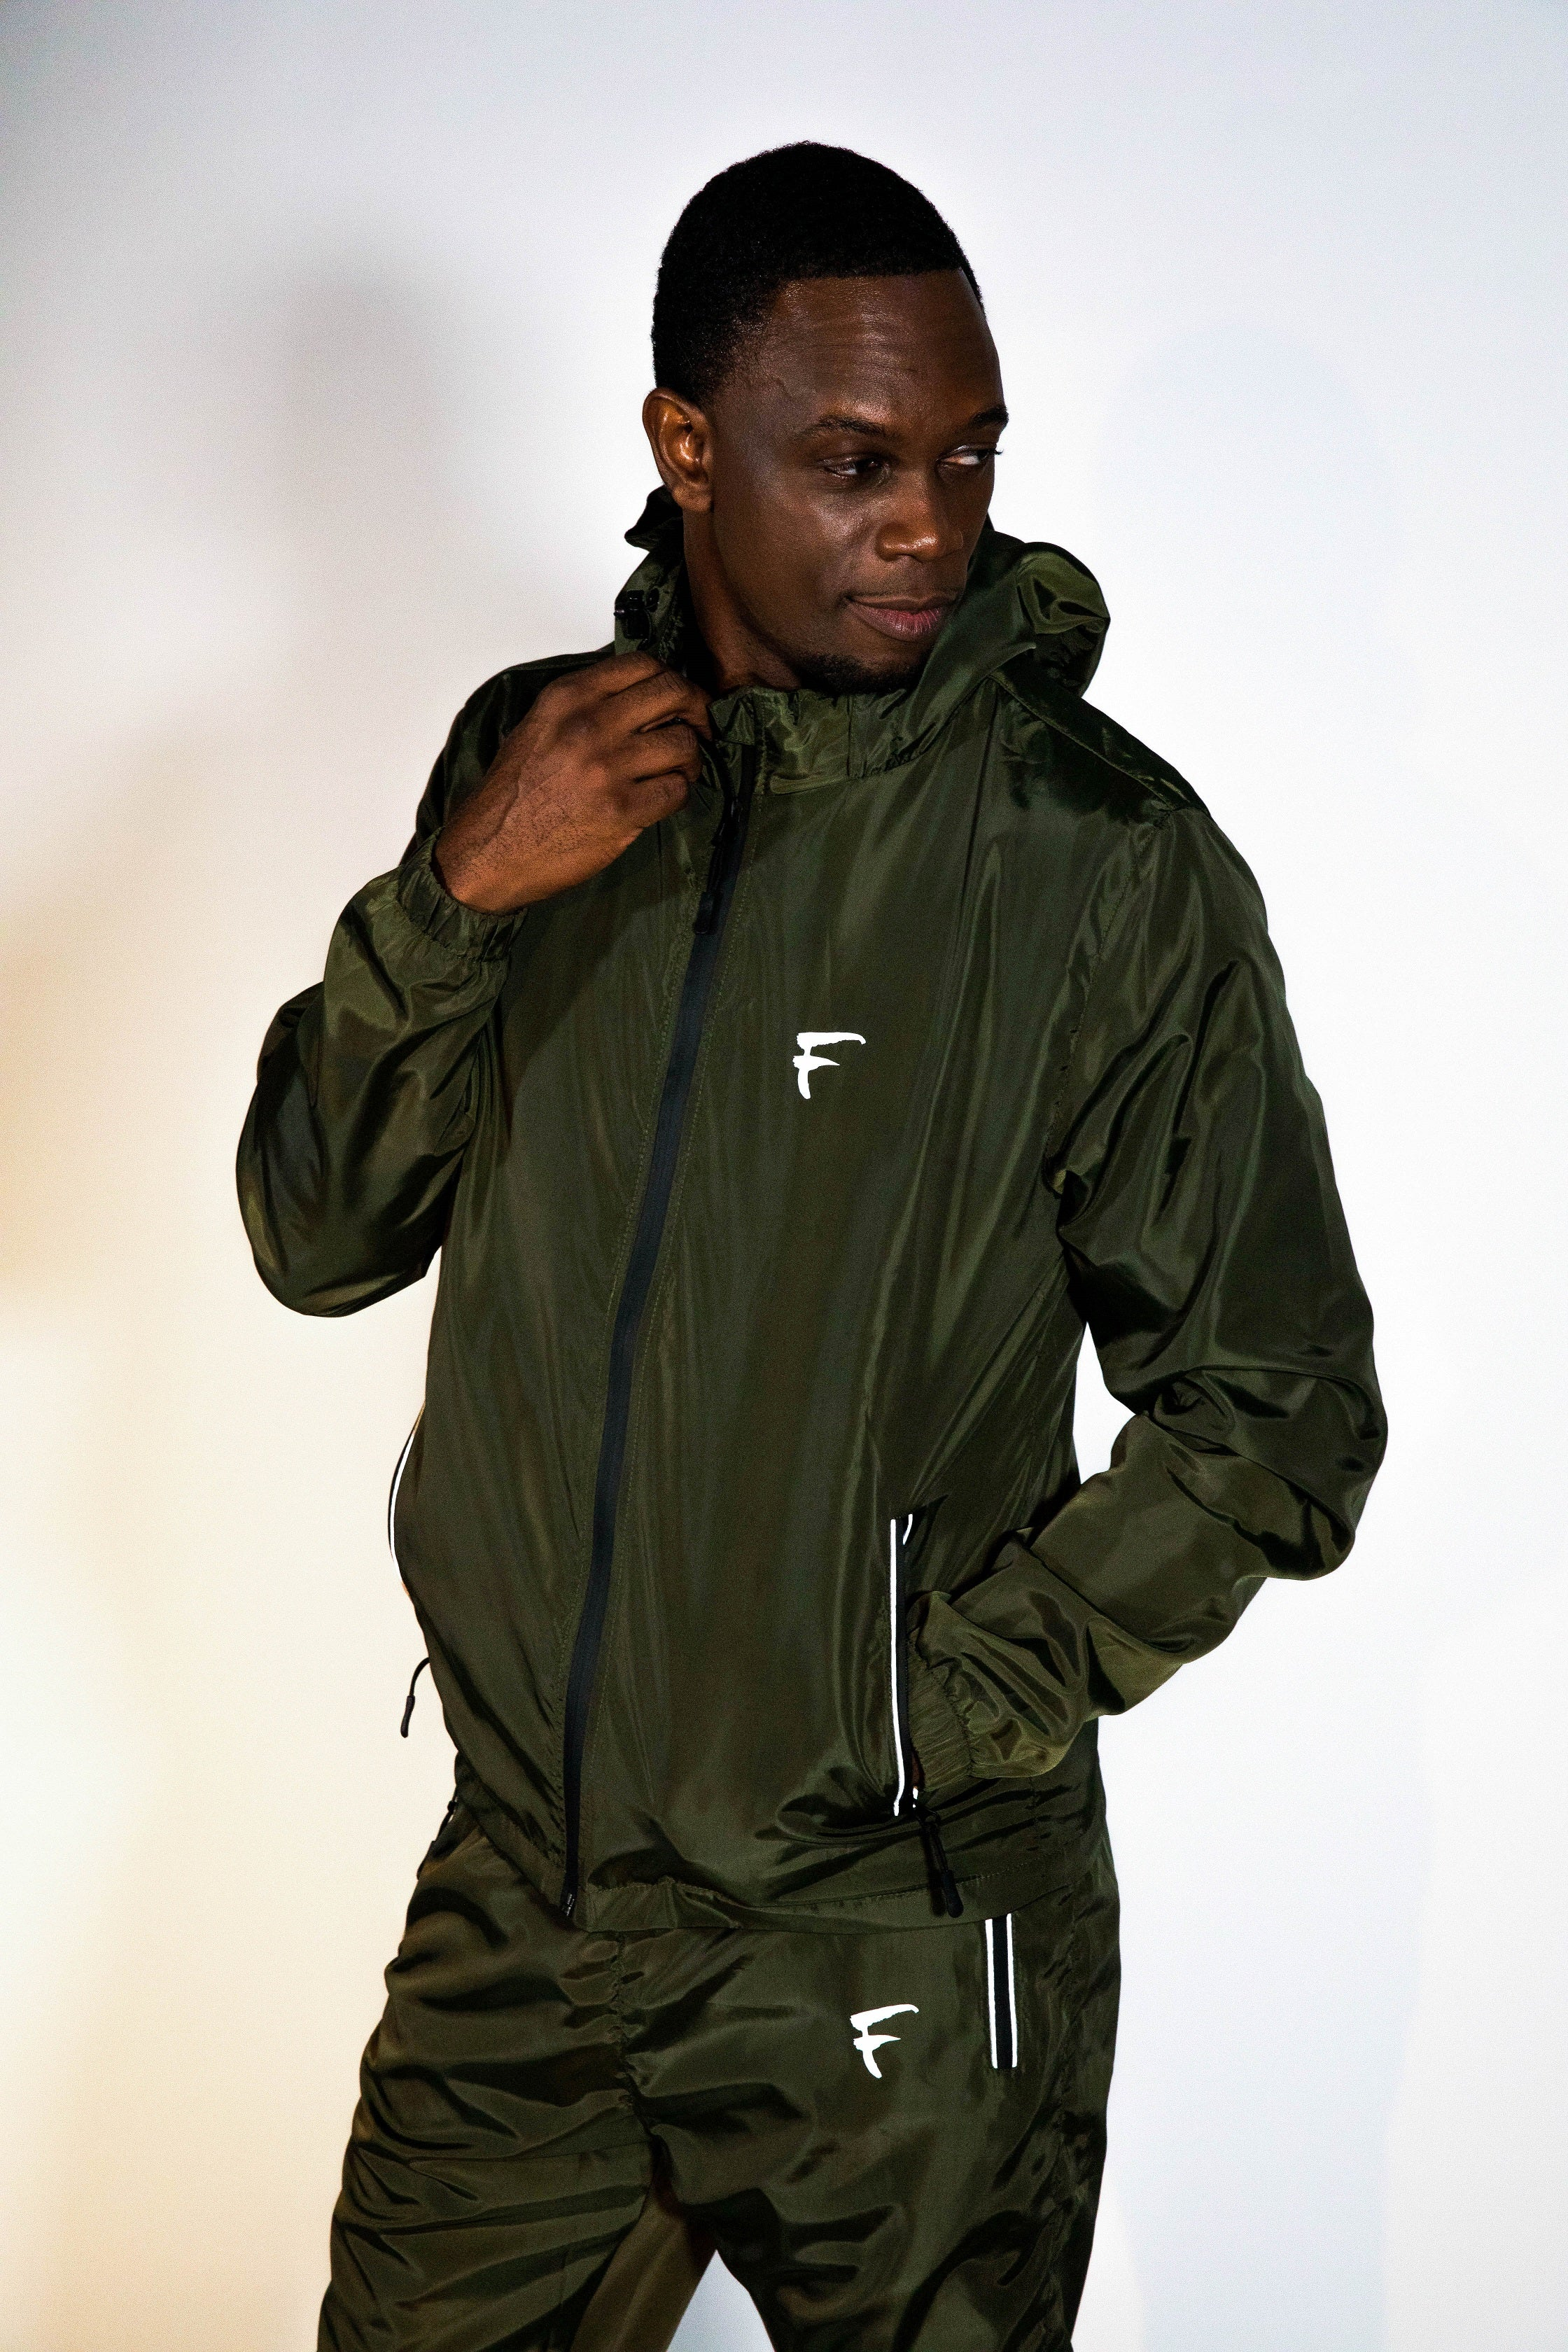 Men / Women Aero Reflective Activewear Streetwear Jogger Windbreaker Track Suit Jacket Pants